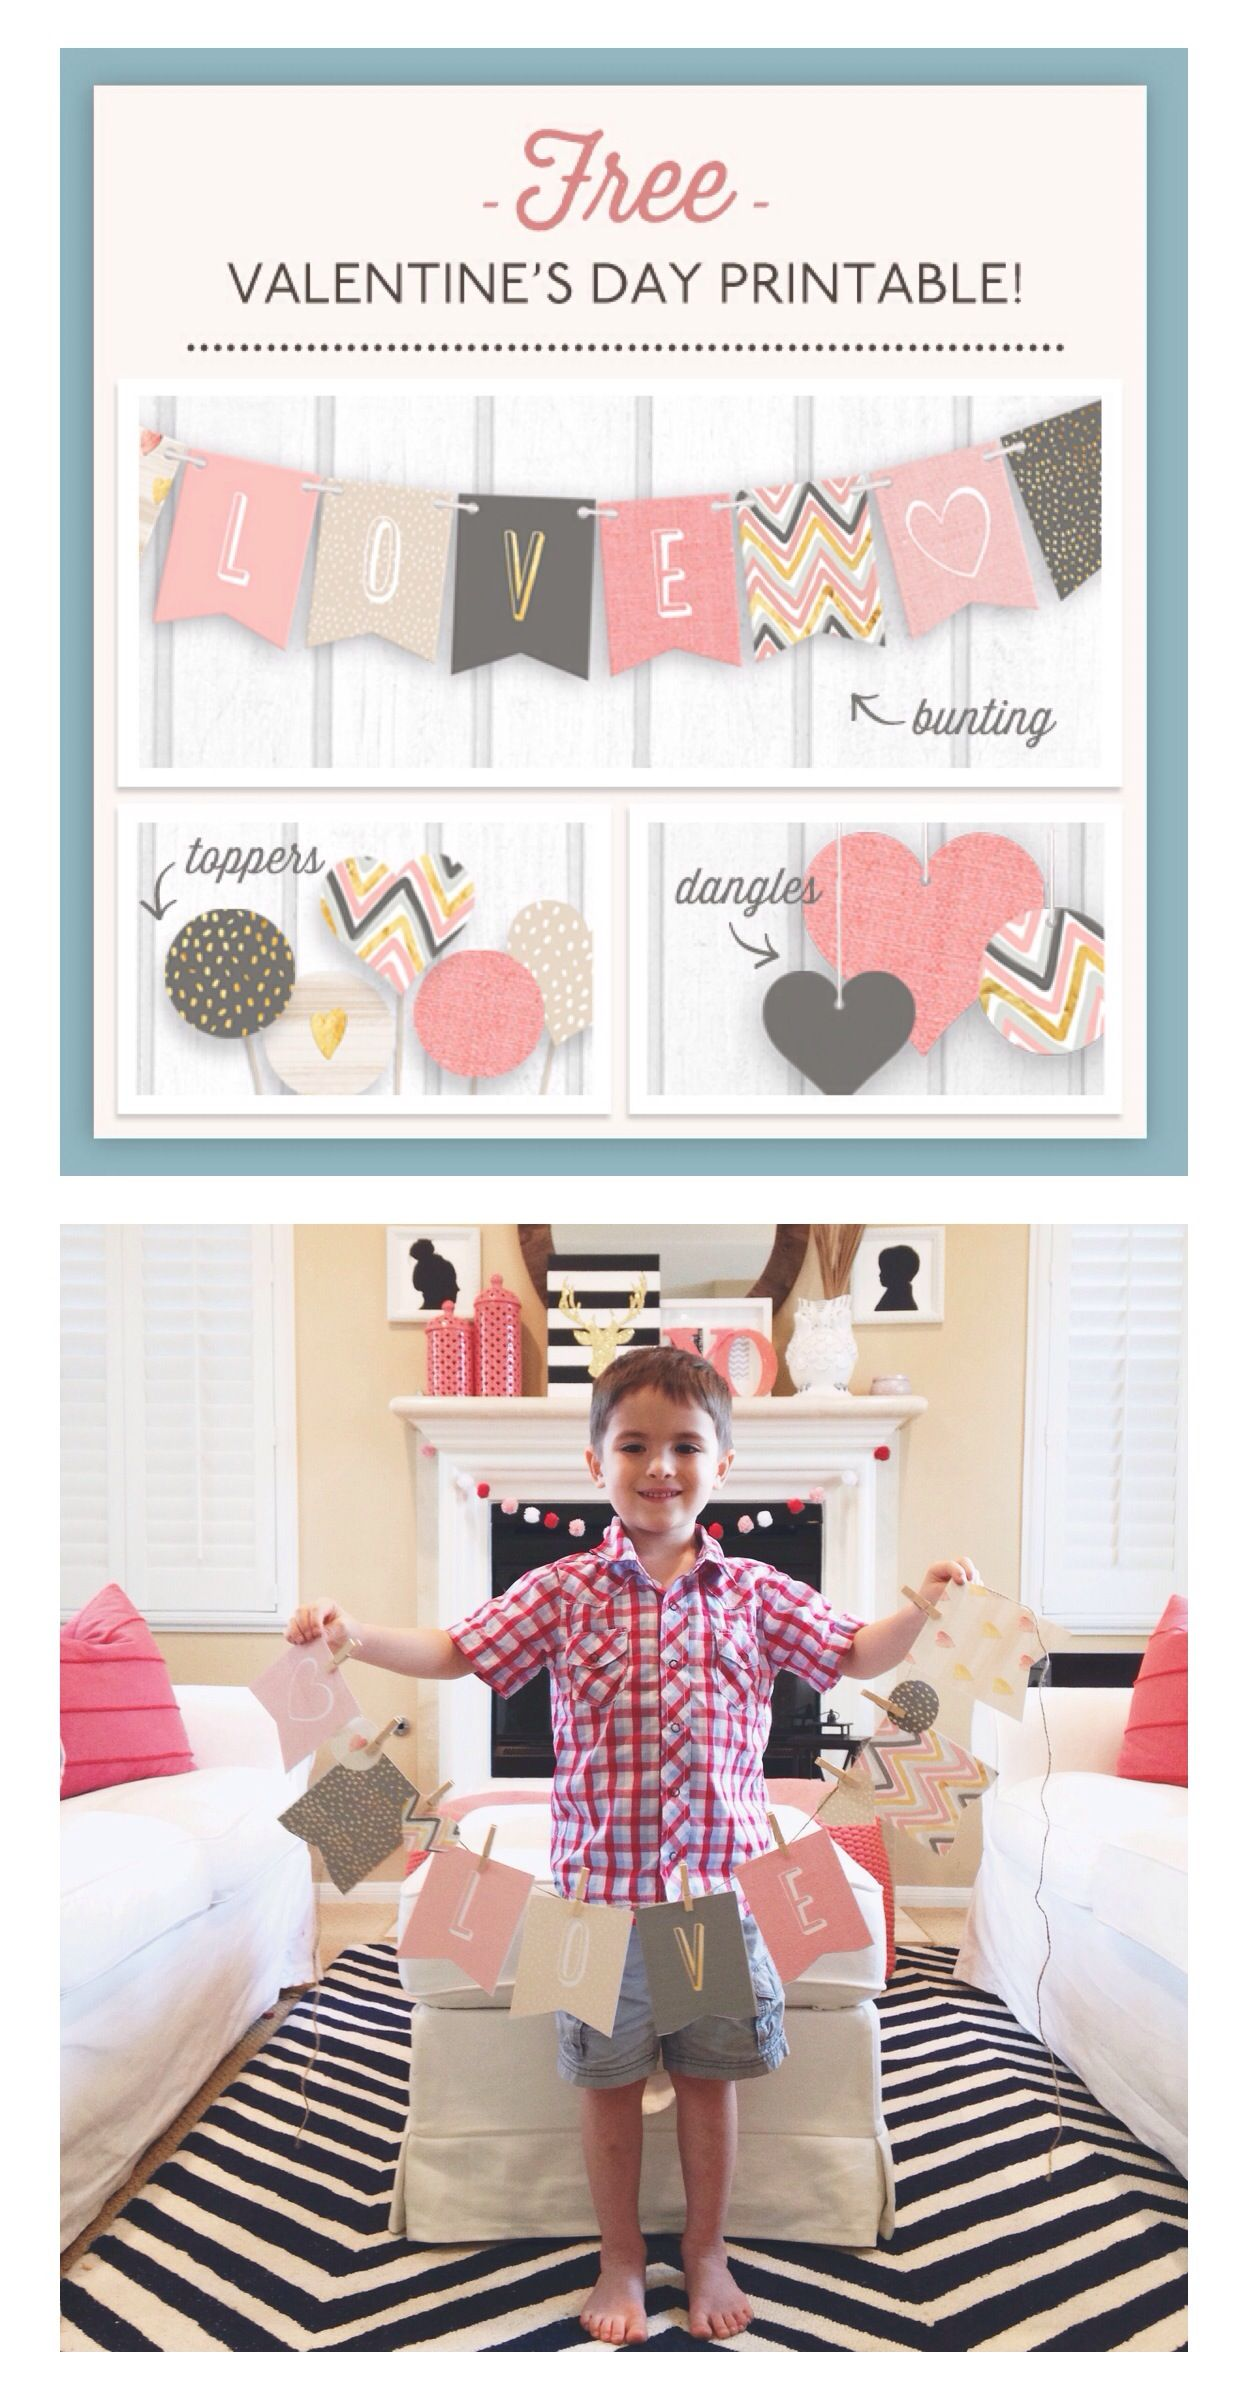 Free printable valentines day bannner from style space stuff free printable valentines day bannner from style space stuff blog young tree greetings m4hsunfo